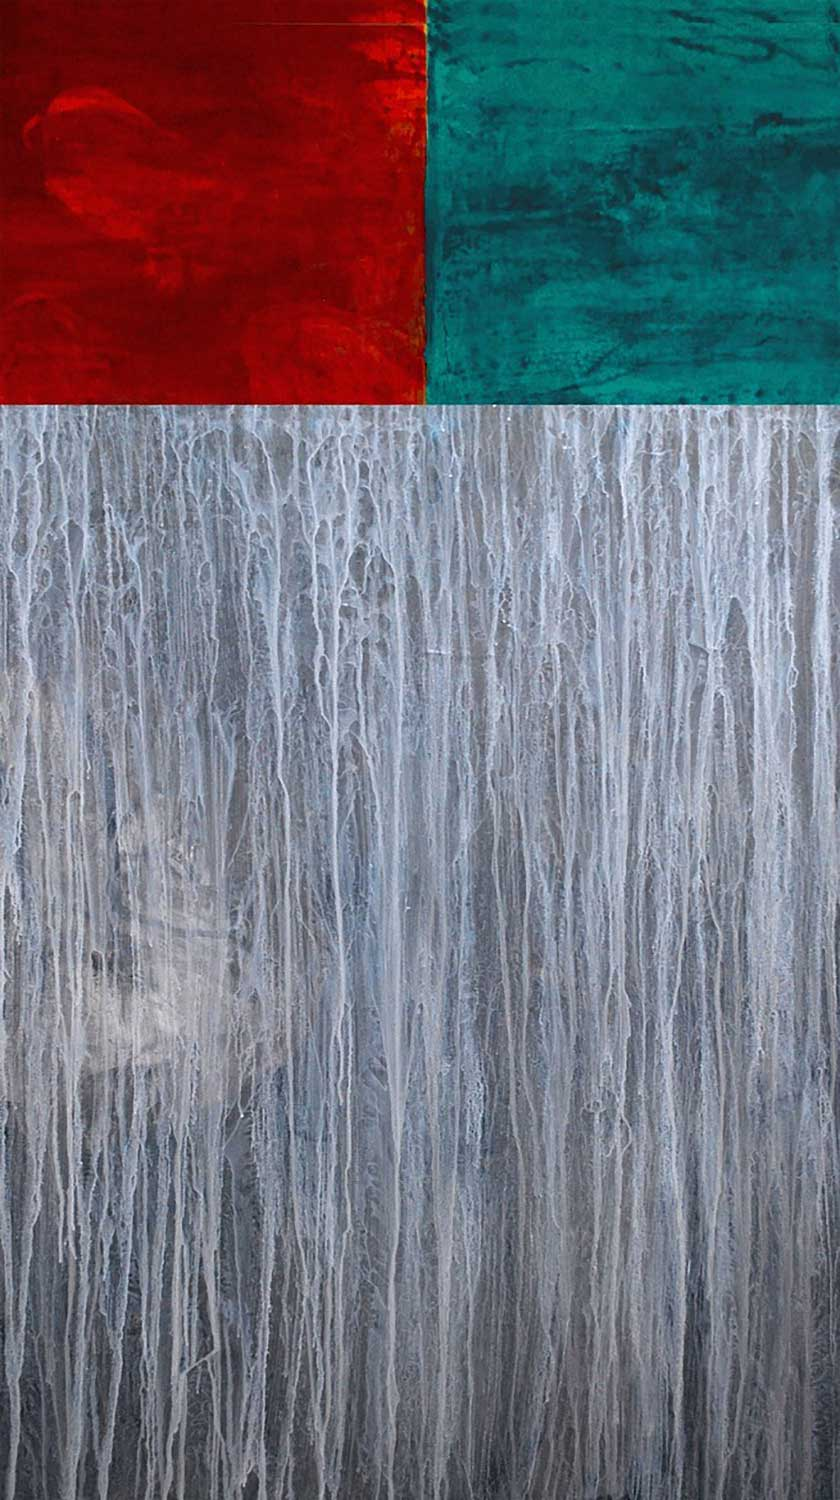 Brand en ijs, 2015 Acrylic on canvas, 24 x 48 inches.